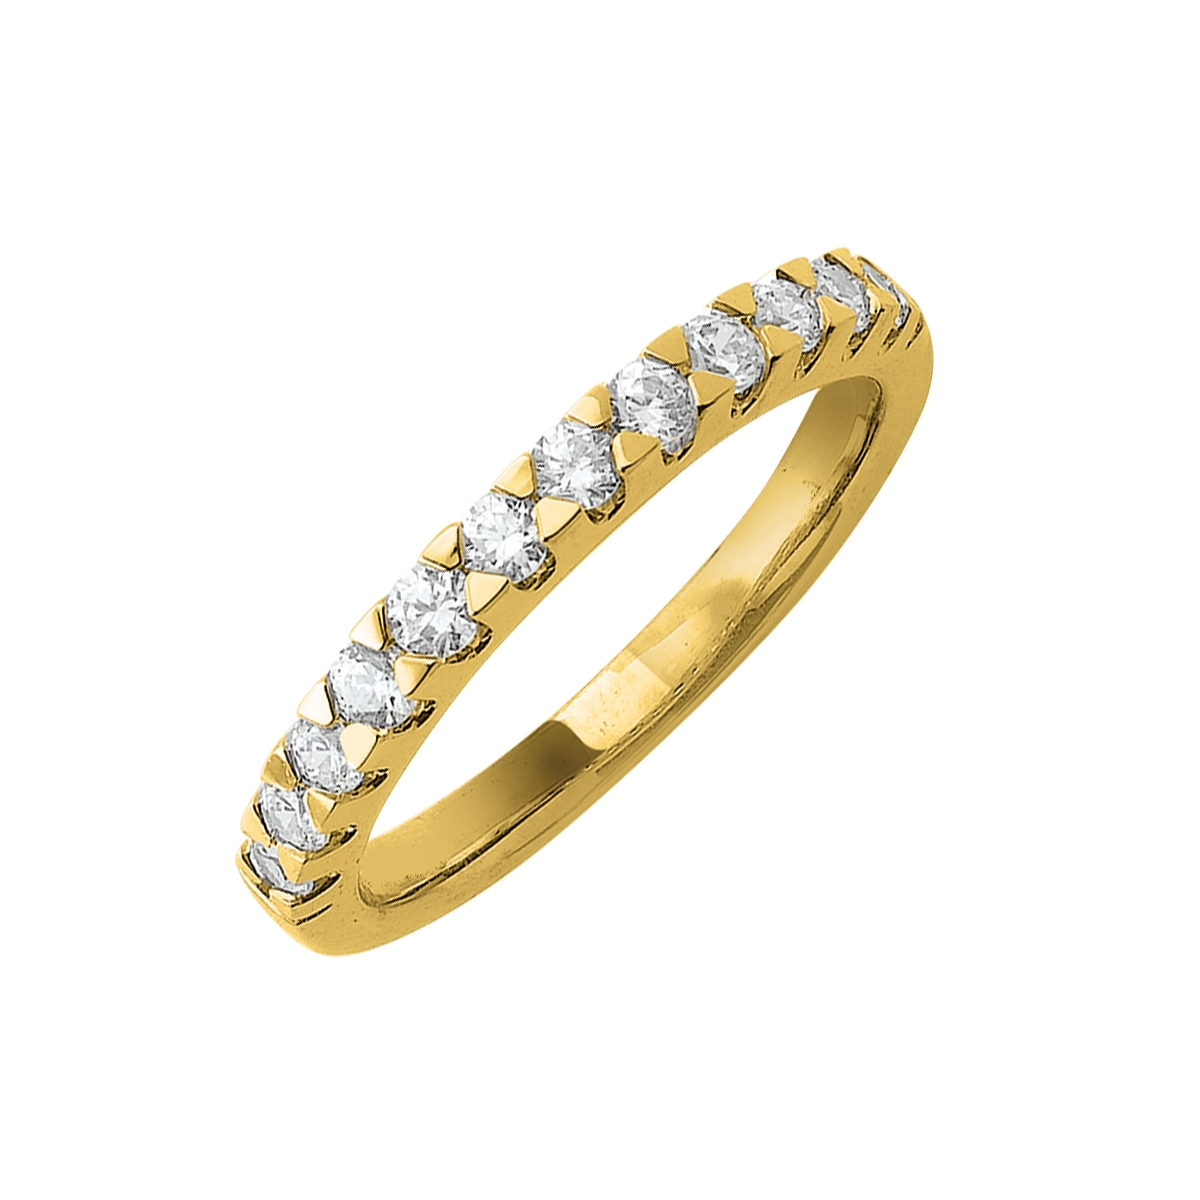 Alliance demi-tour serti griffes or jaune - Diamants synthétiques 0,50 carat